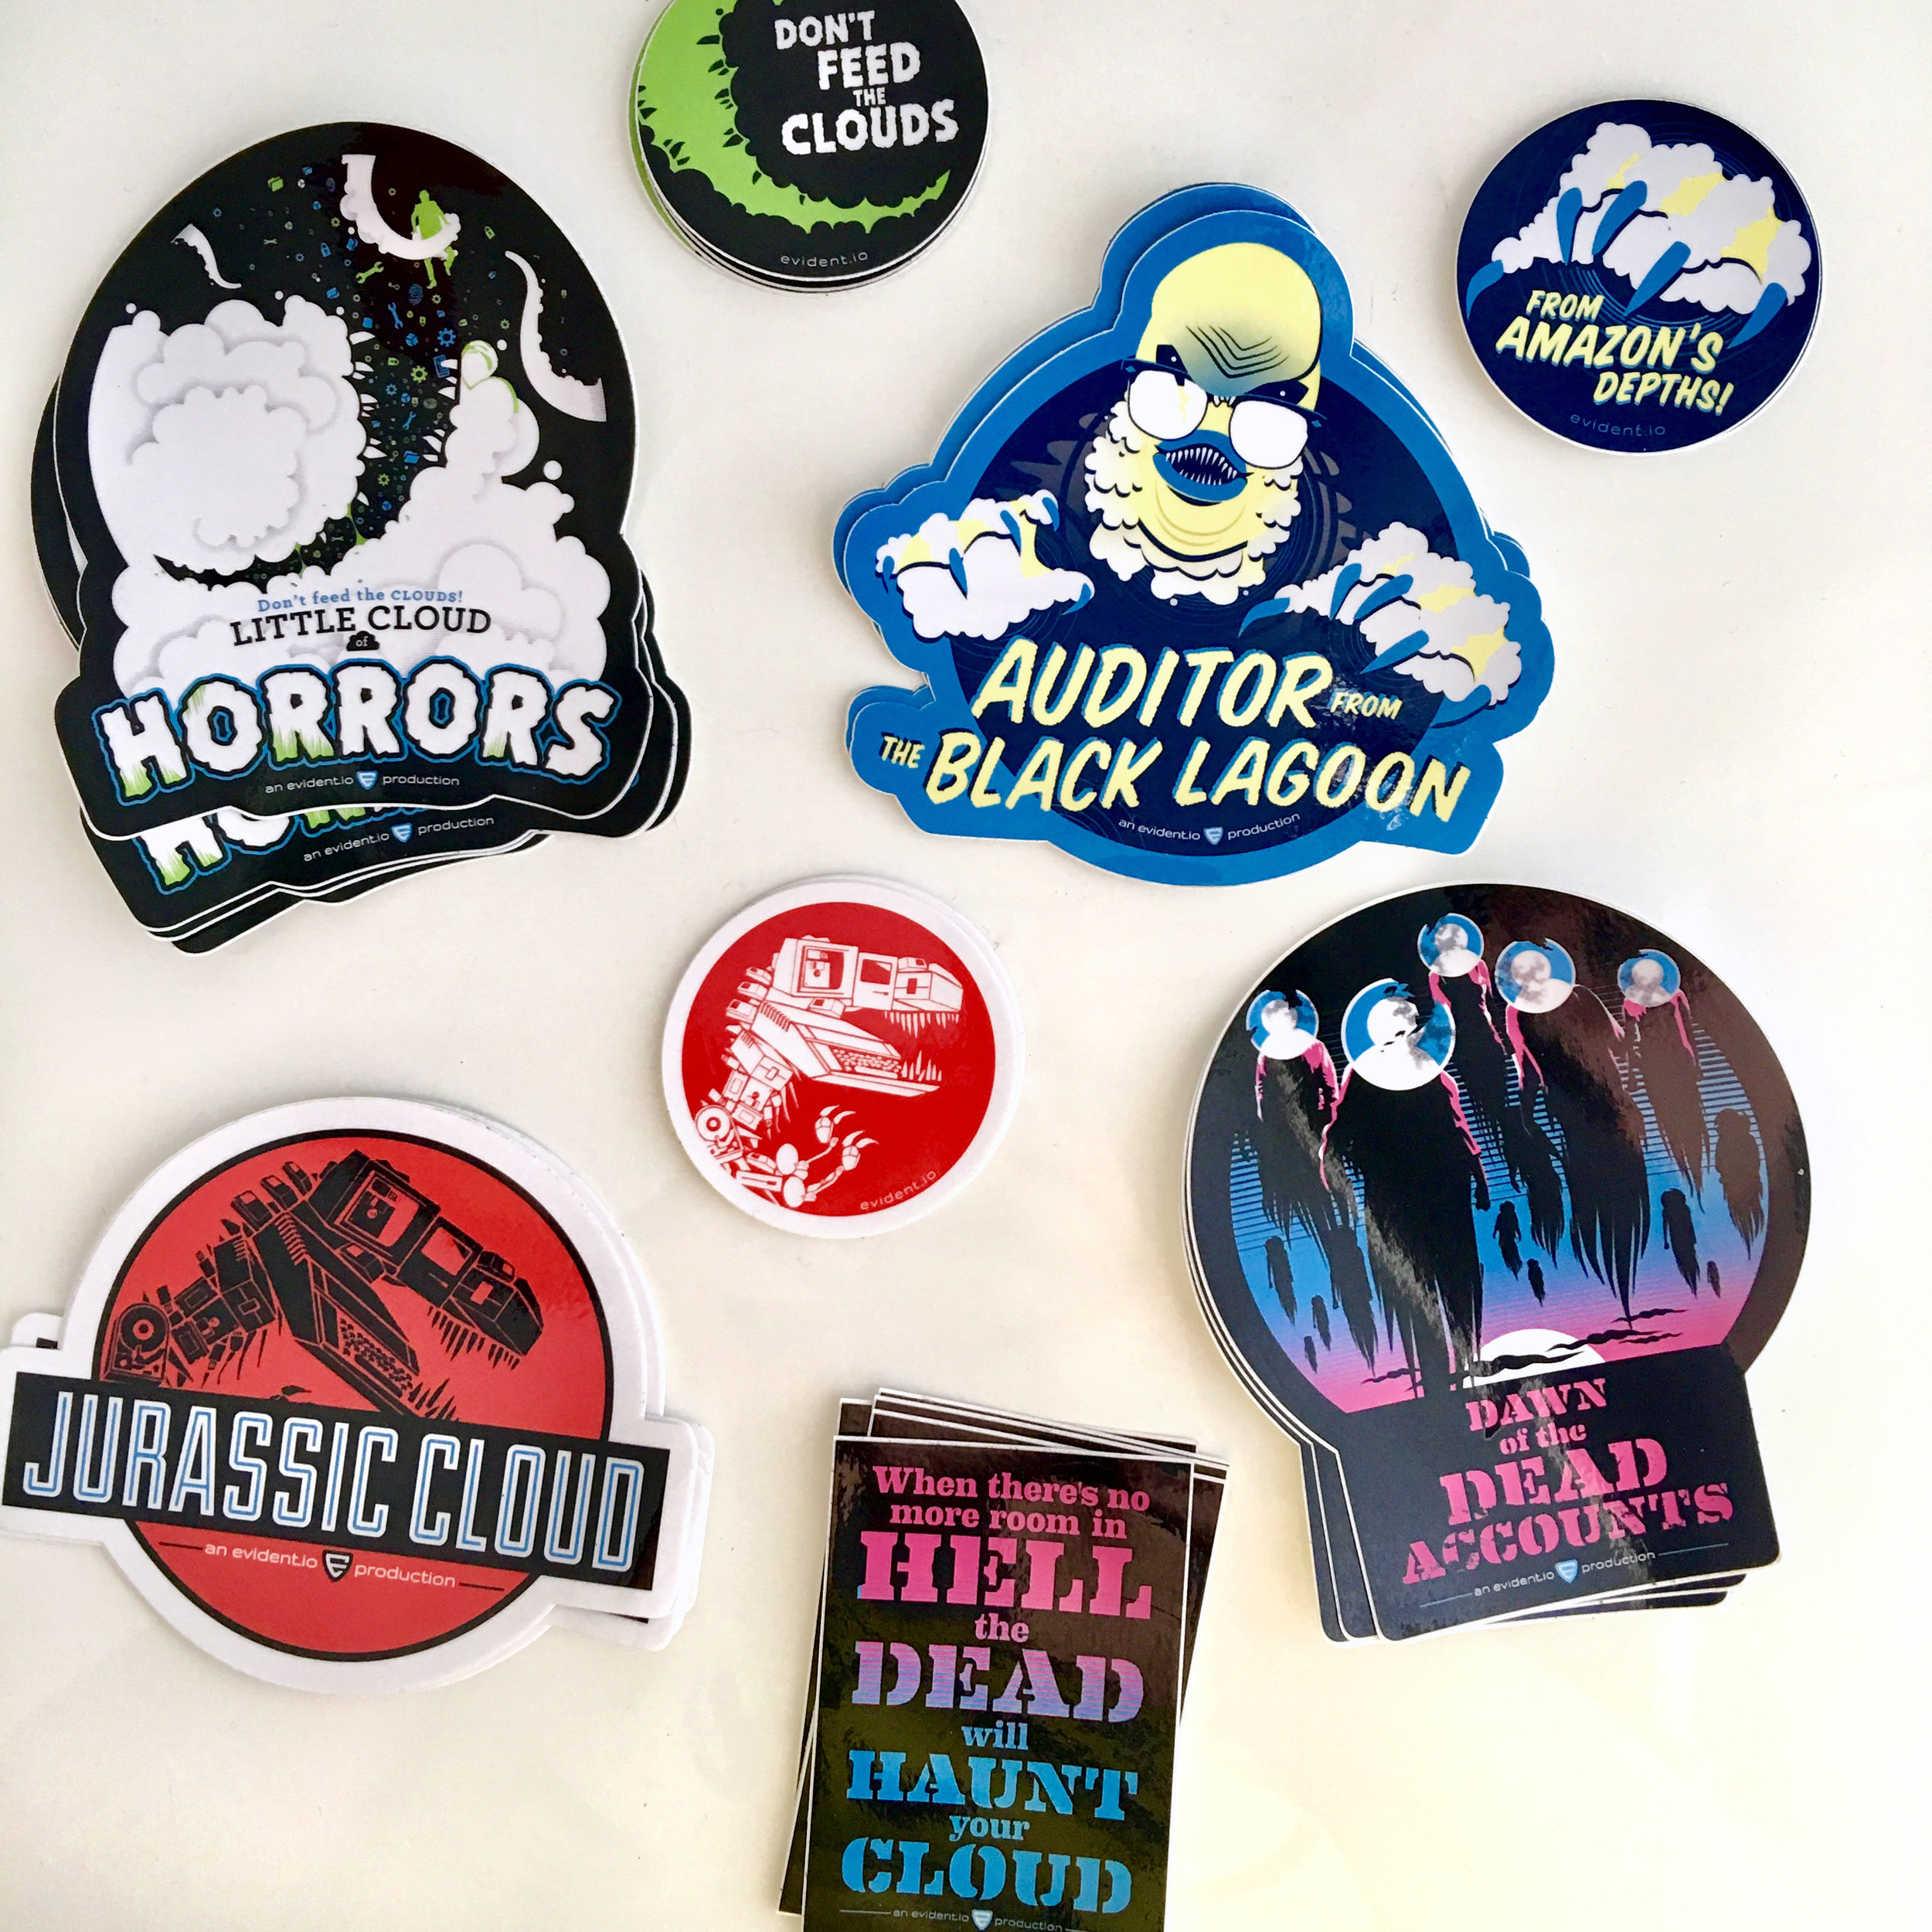 Monsters of the Cloud sticker series